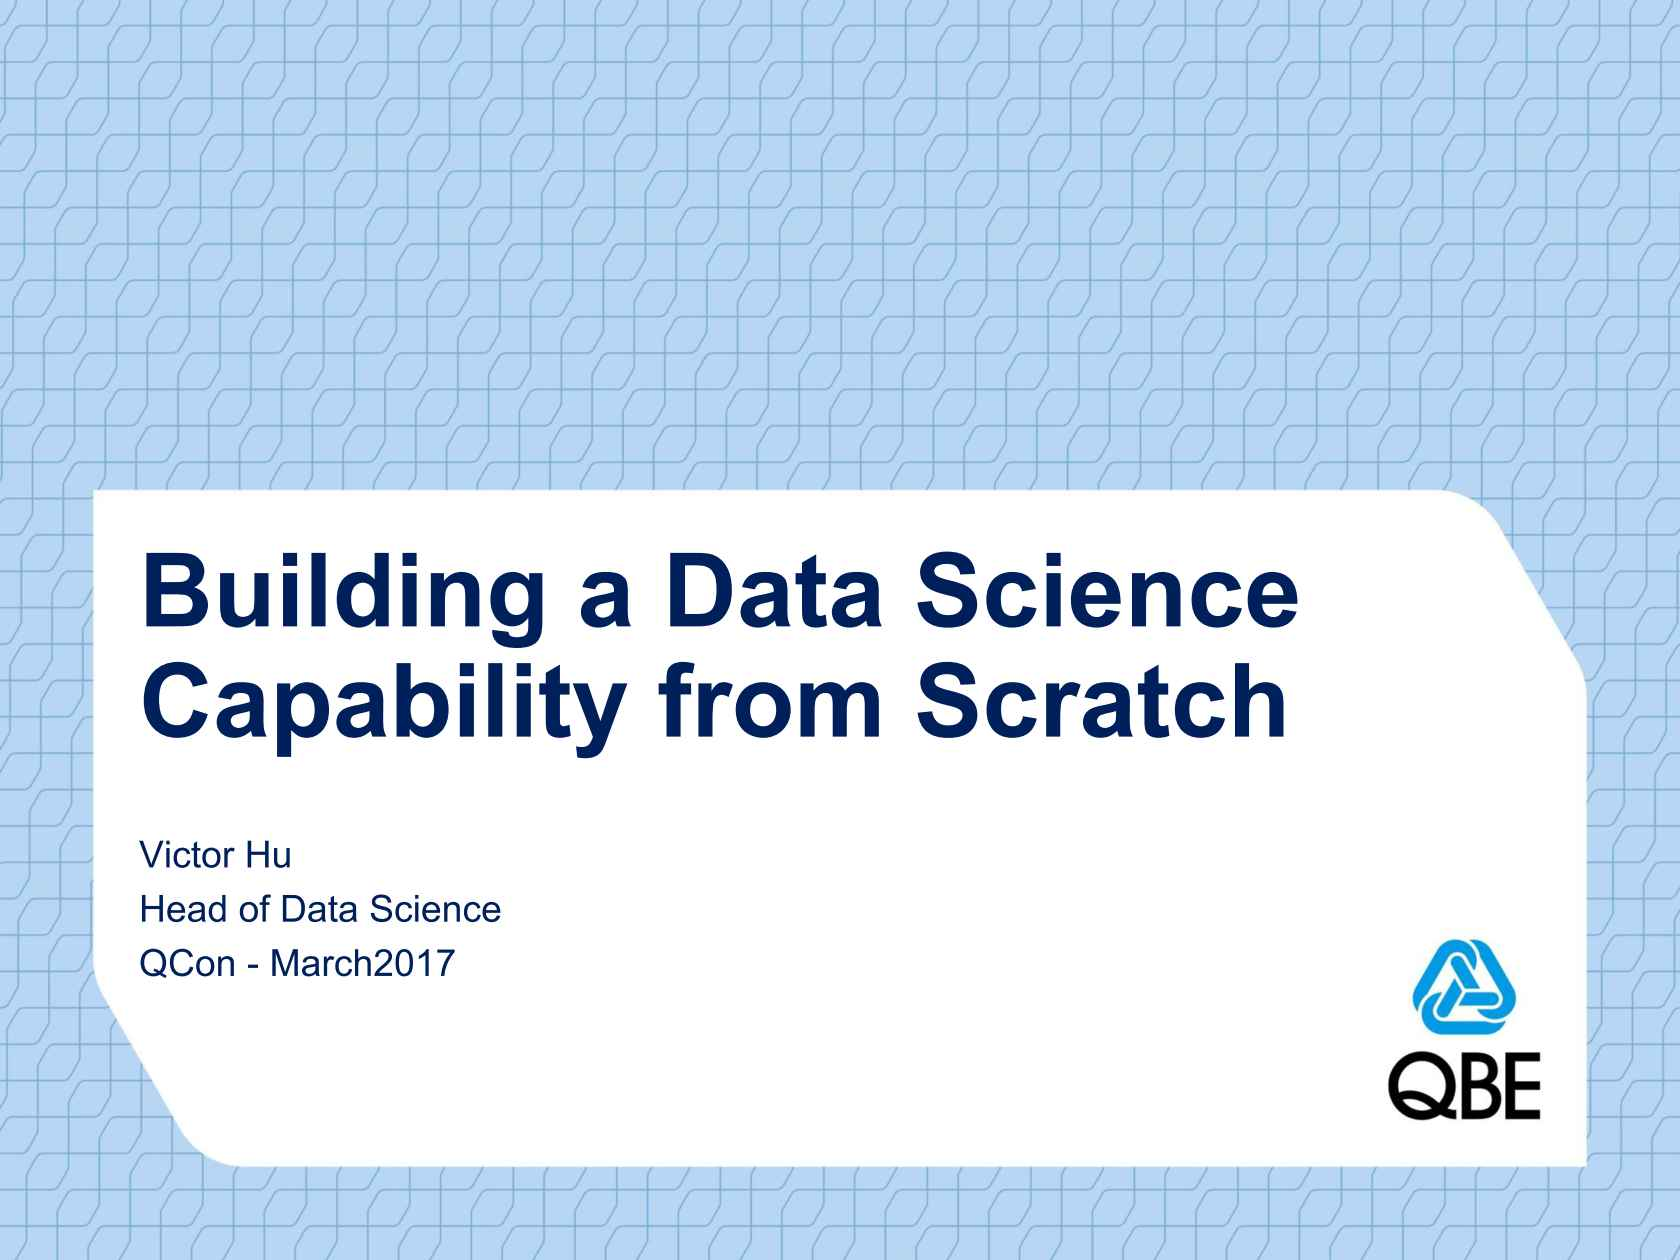 Building a Data Science Capability from Scratch